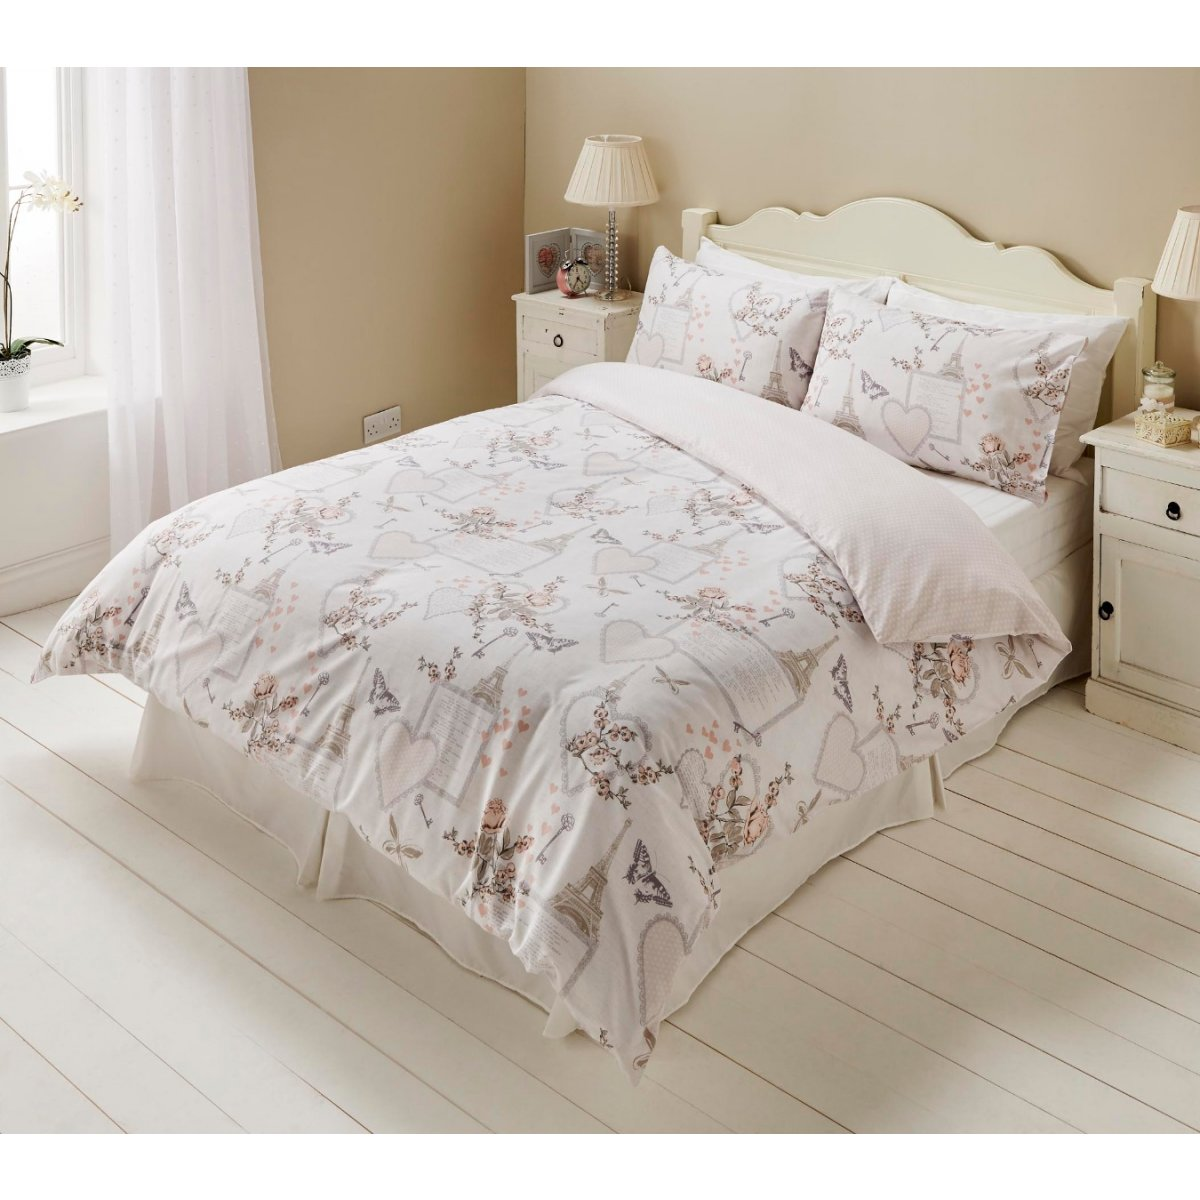 Romantic Bedding - Reversible Duvet Cover and Pillowcase Set